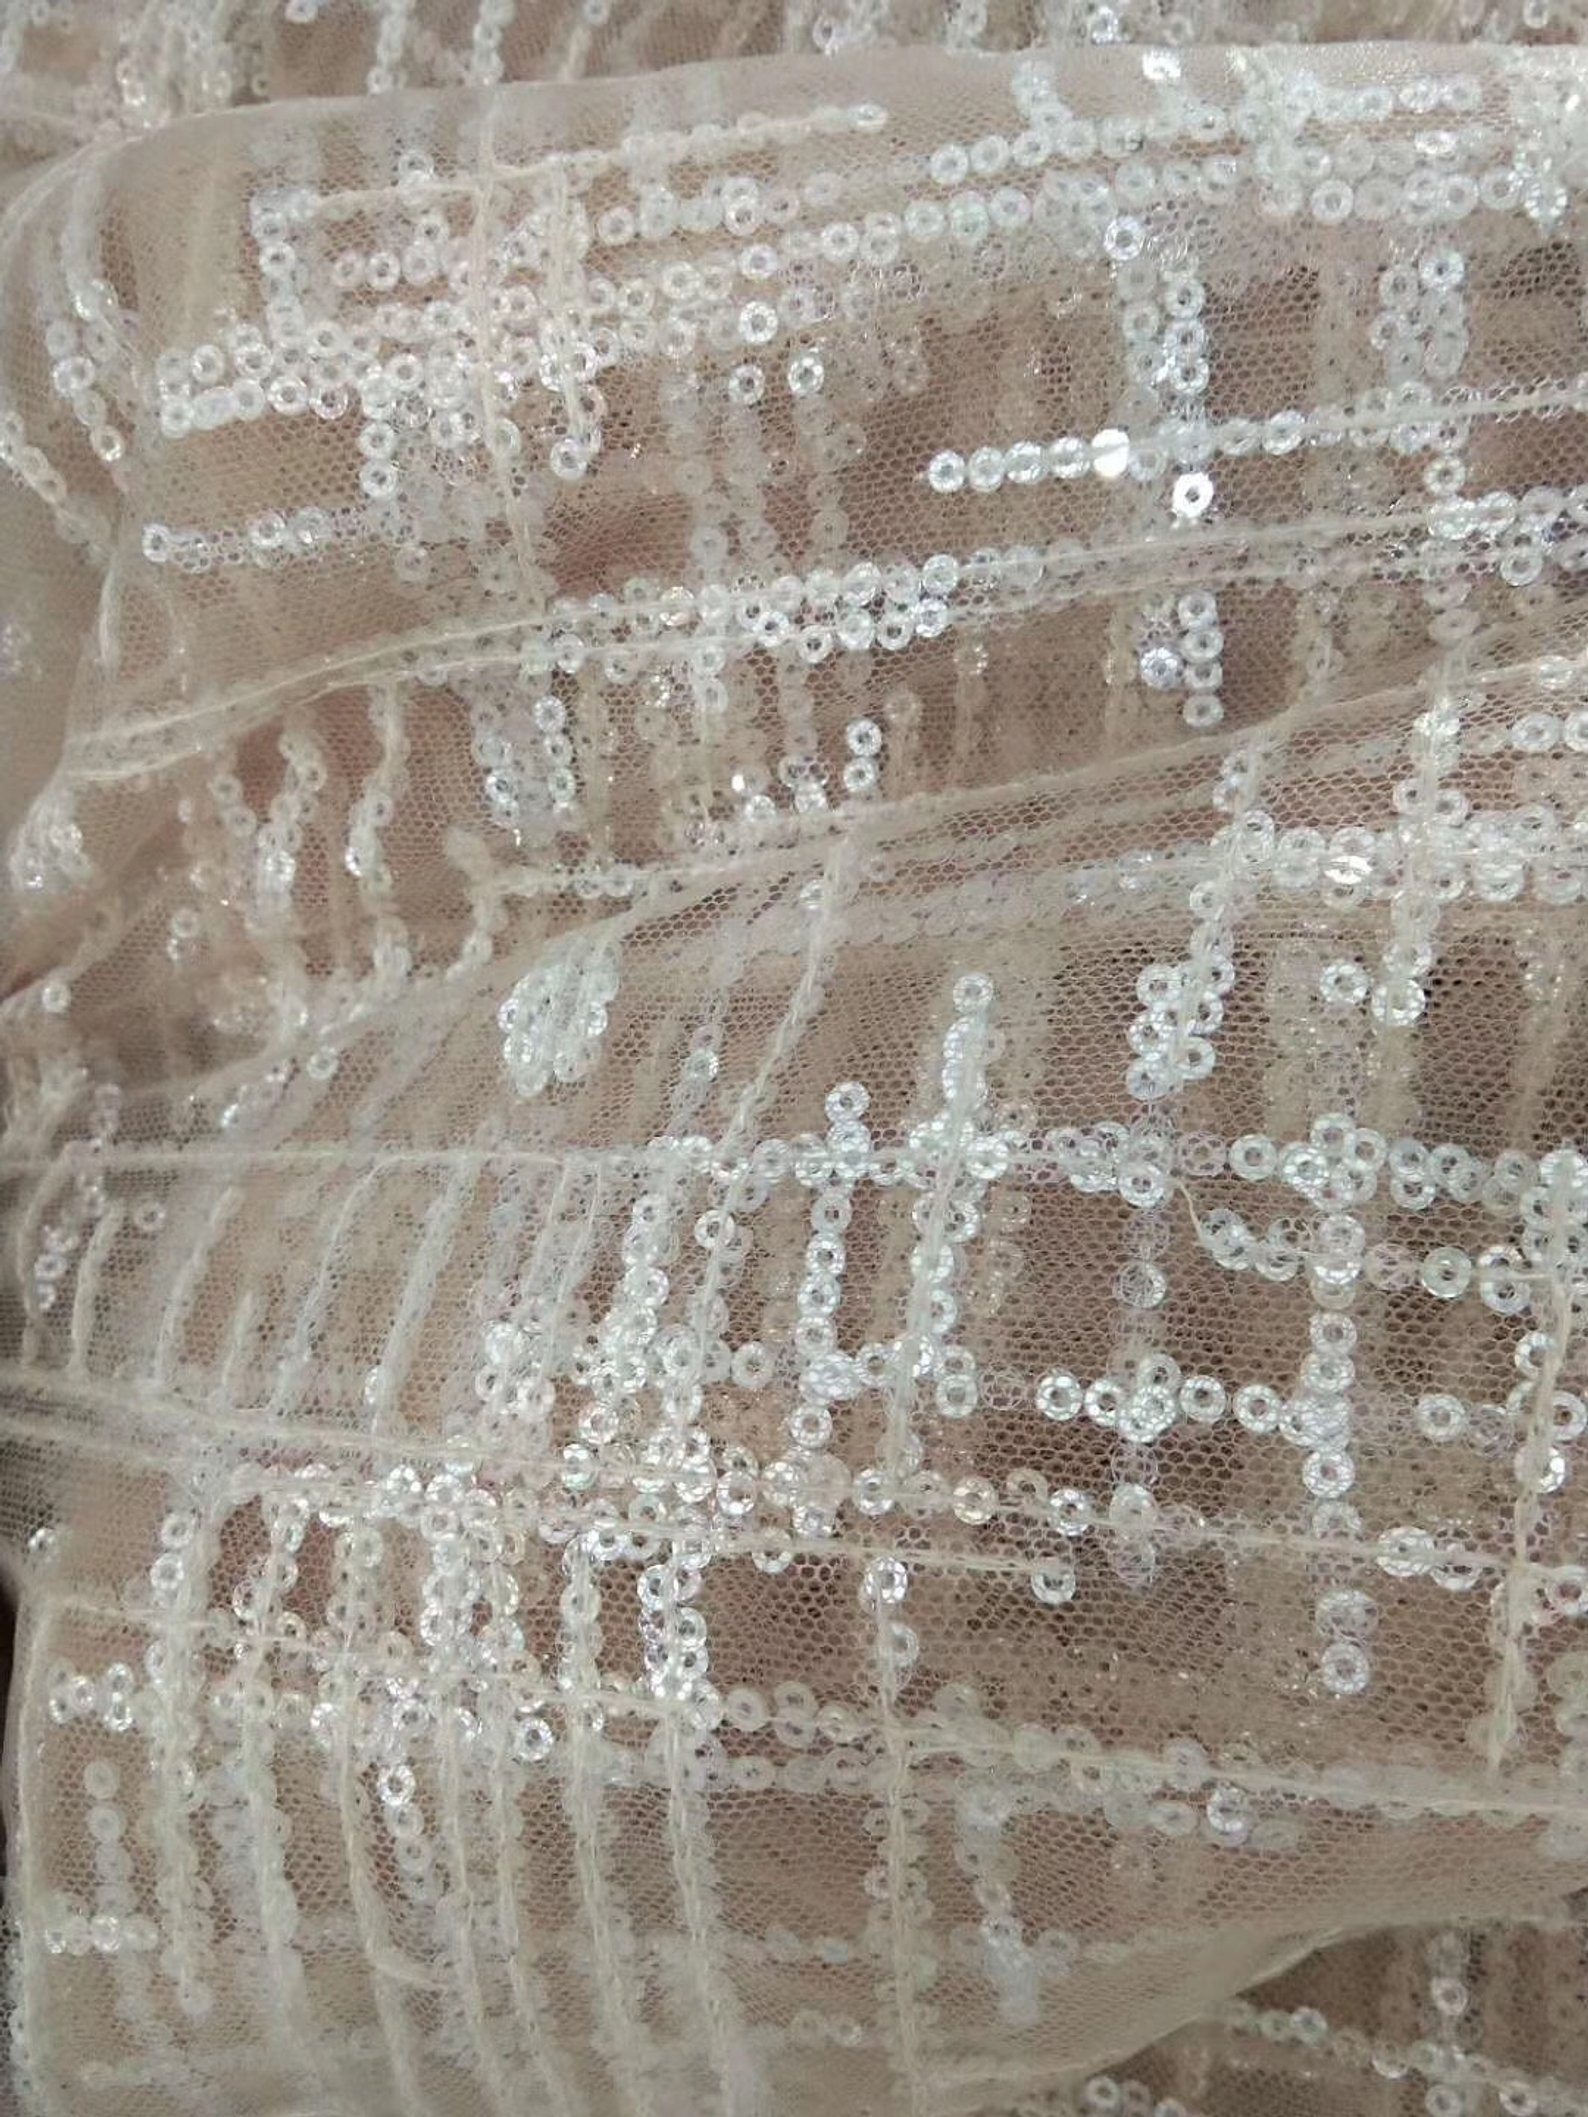 1 yard Sequin tulle grid lace fabric in pale pink for prom dress evening dress haute couture women dress fabric in Fabric from Home Garden